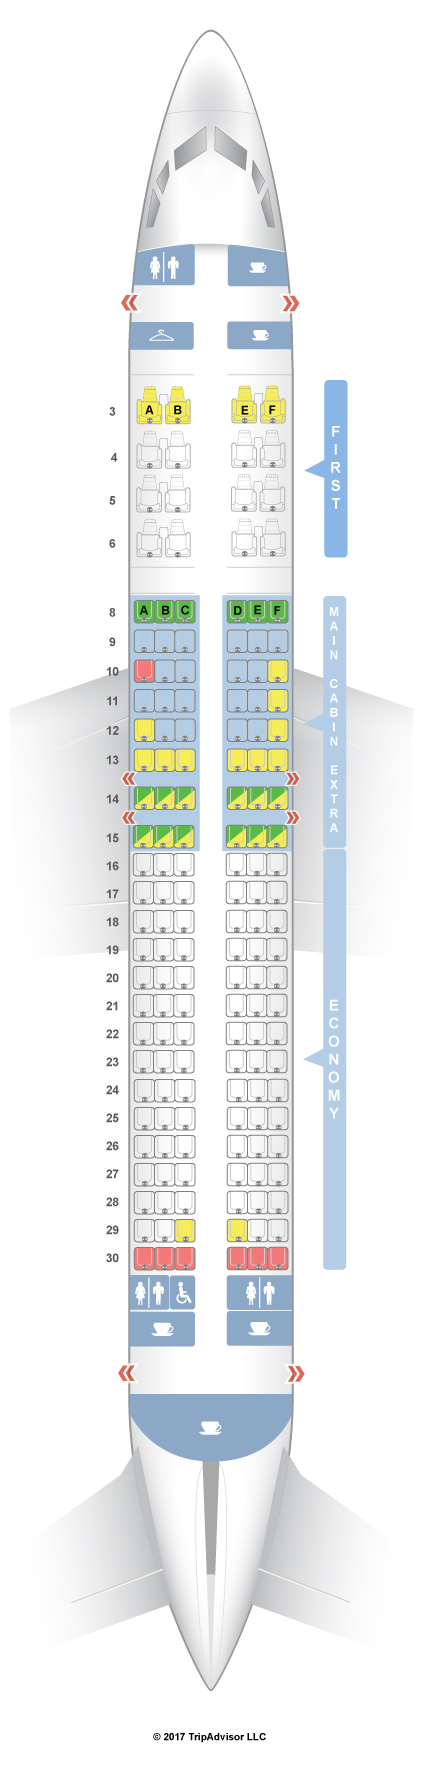 Seatguru Seat Map American Airlines